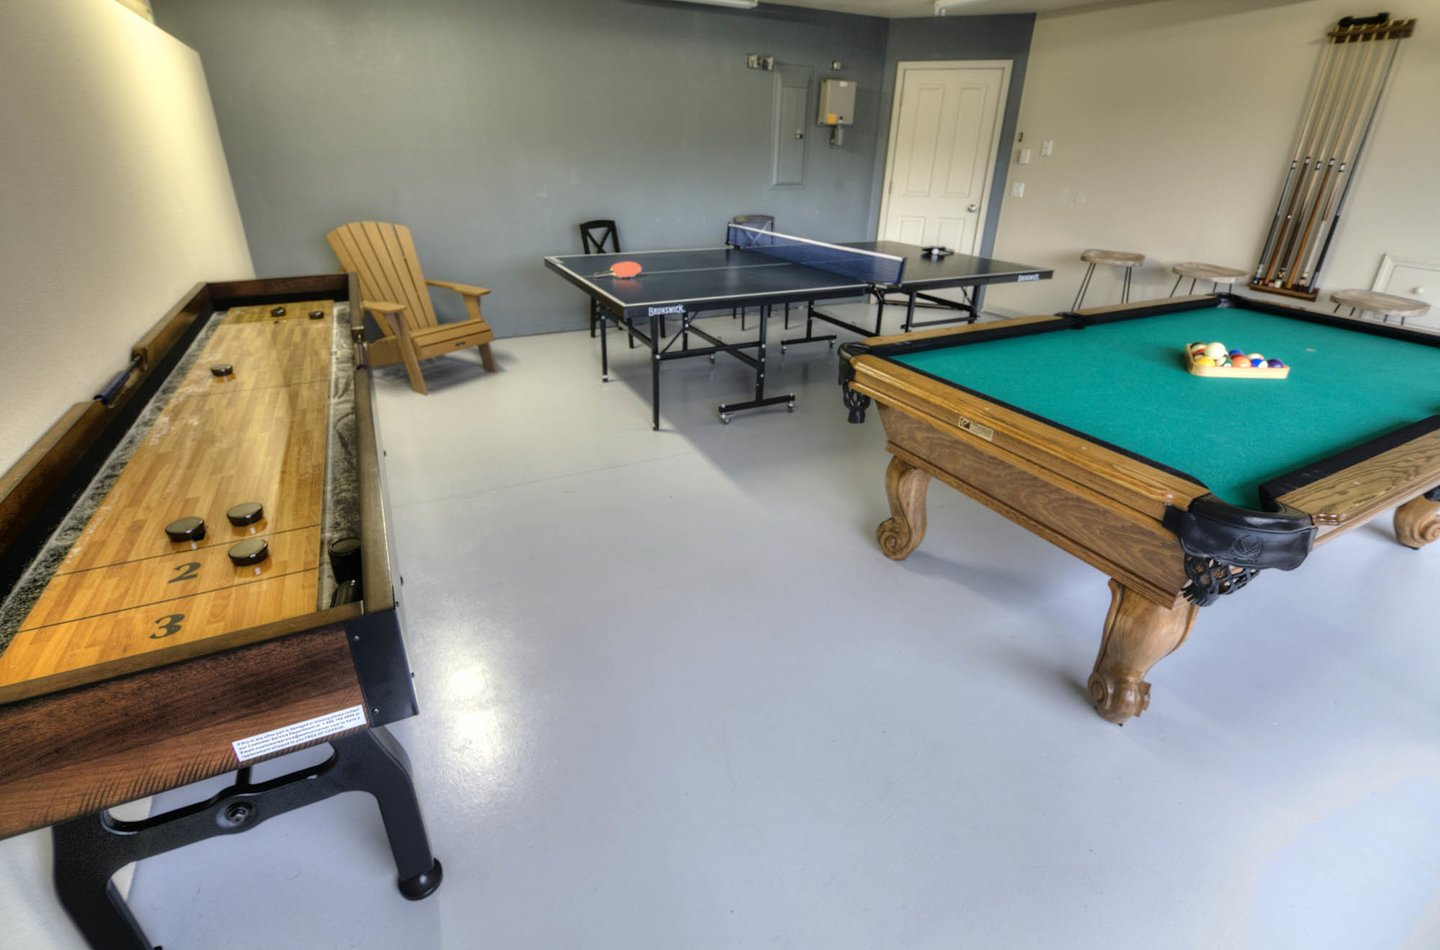 The game room features Pool, Ping-Pong, and Shuffle Board.